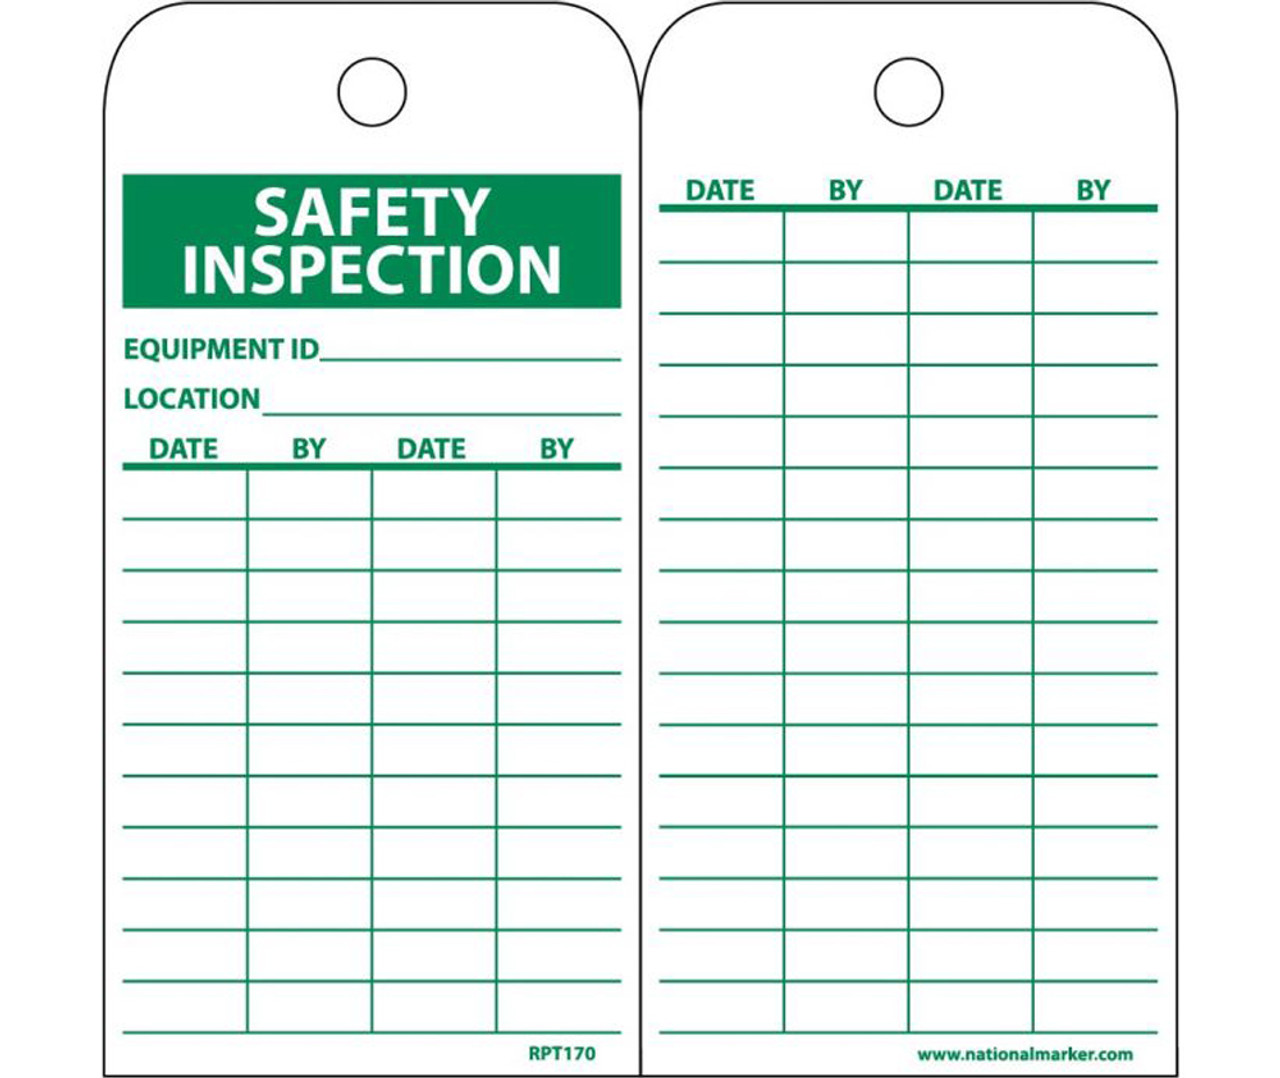 Safety Inspection Date Record Tag